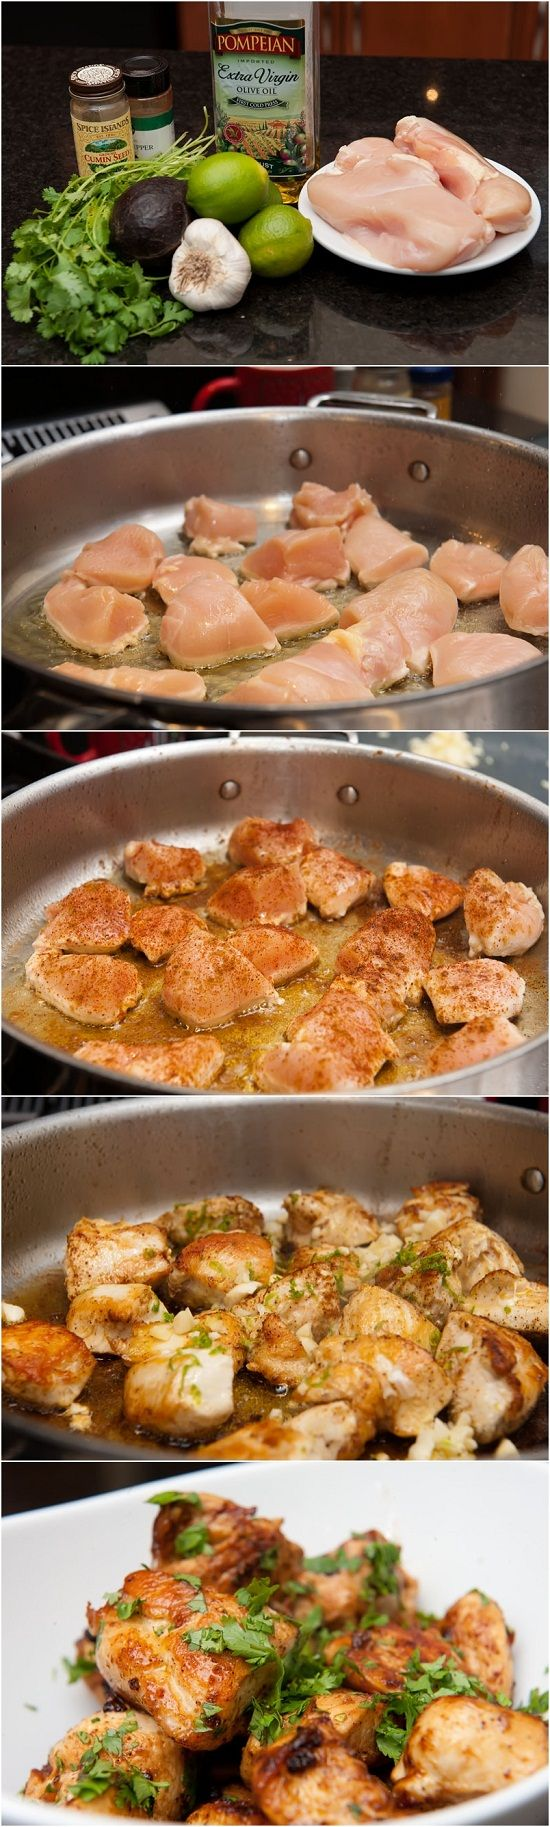 Quick Lime Cilantro Chicken for all phases -- just skip the avocado and oil for Phase 1 and Phase 2 (use a nonstick pan instead).